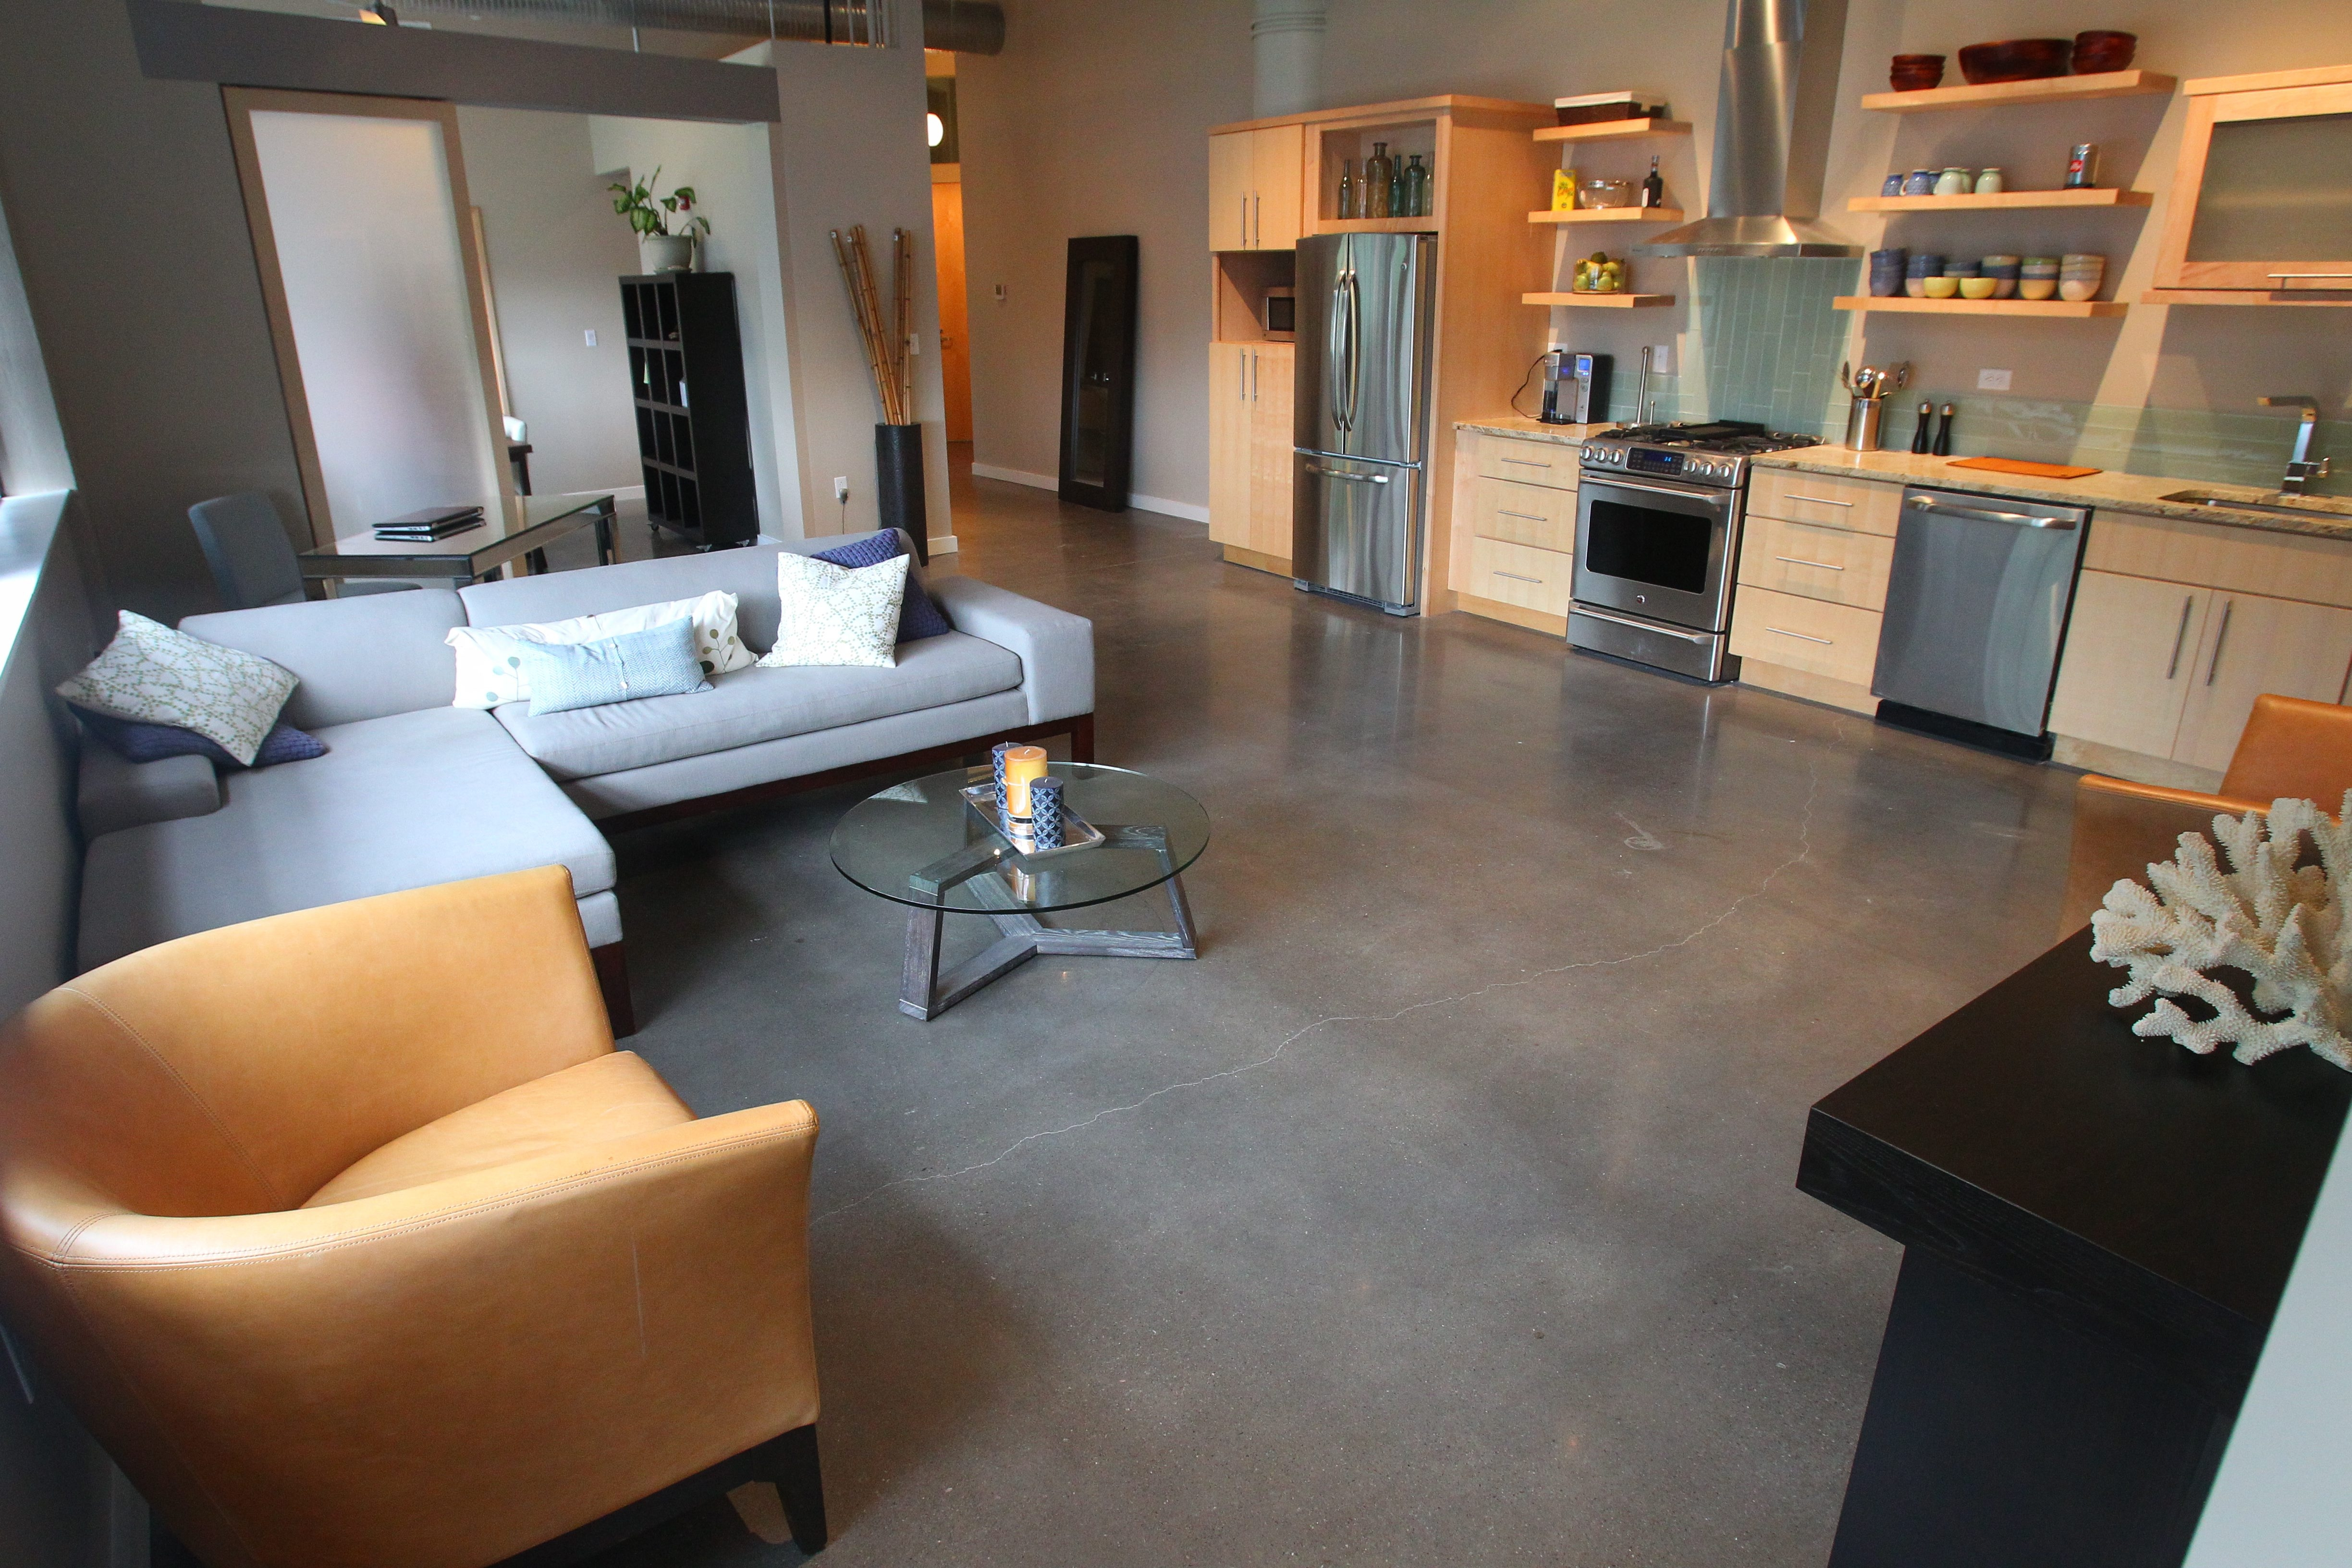 New York City developer Anthony Kissling and his Kissling Interests company converted the former Remington Rand building in North Tonawanda into a work-live loft apartment complex with 81 luxury units, an upscale restaurant, a yoga studio and a hairstylist school.